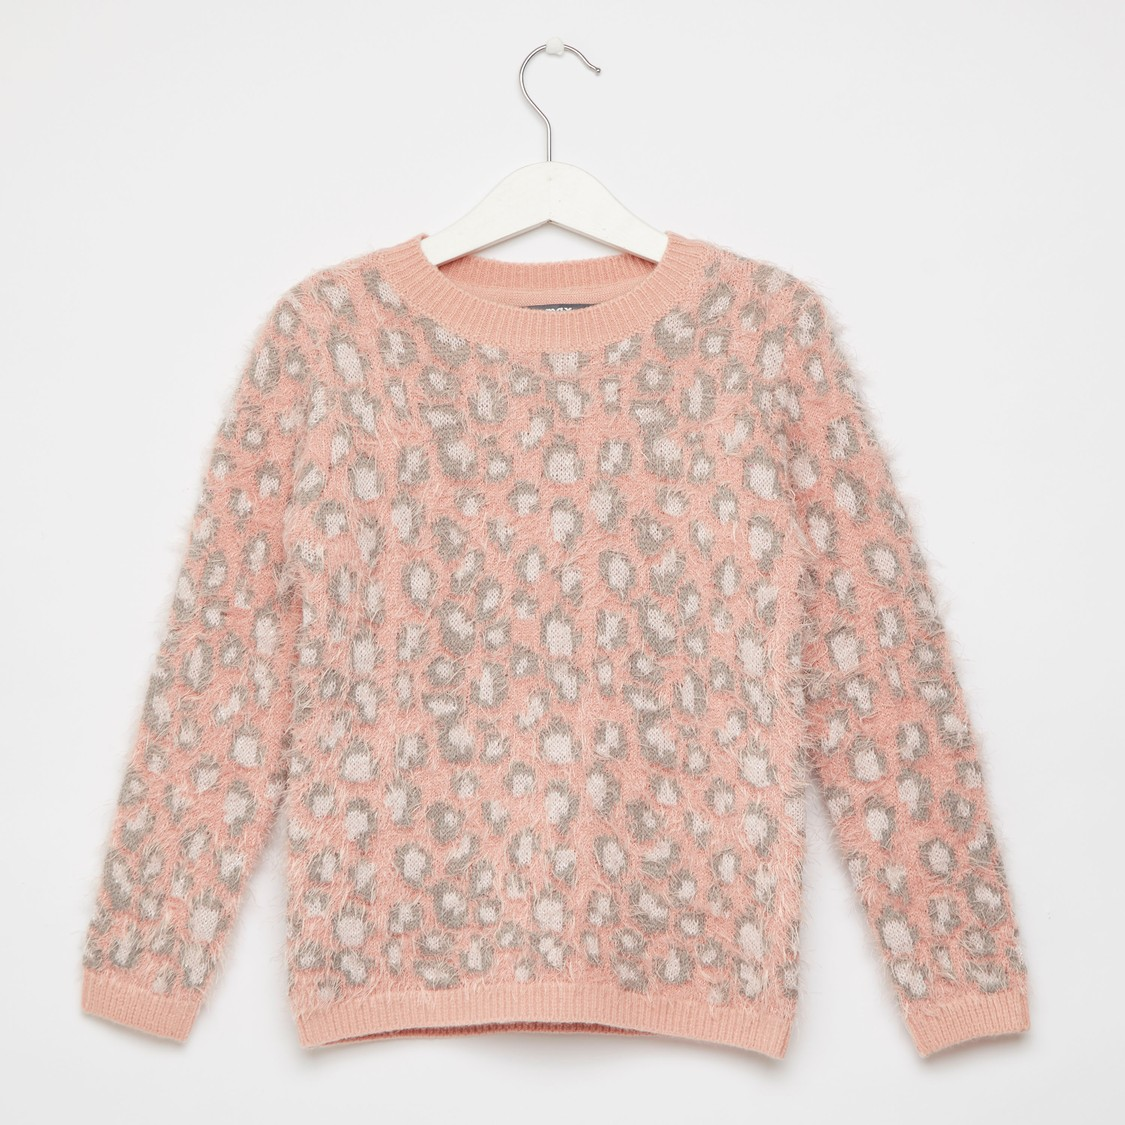 Animal Print Jacquard Sweater with Long Sleeves and Round Neck